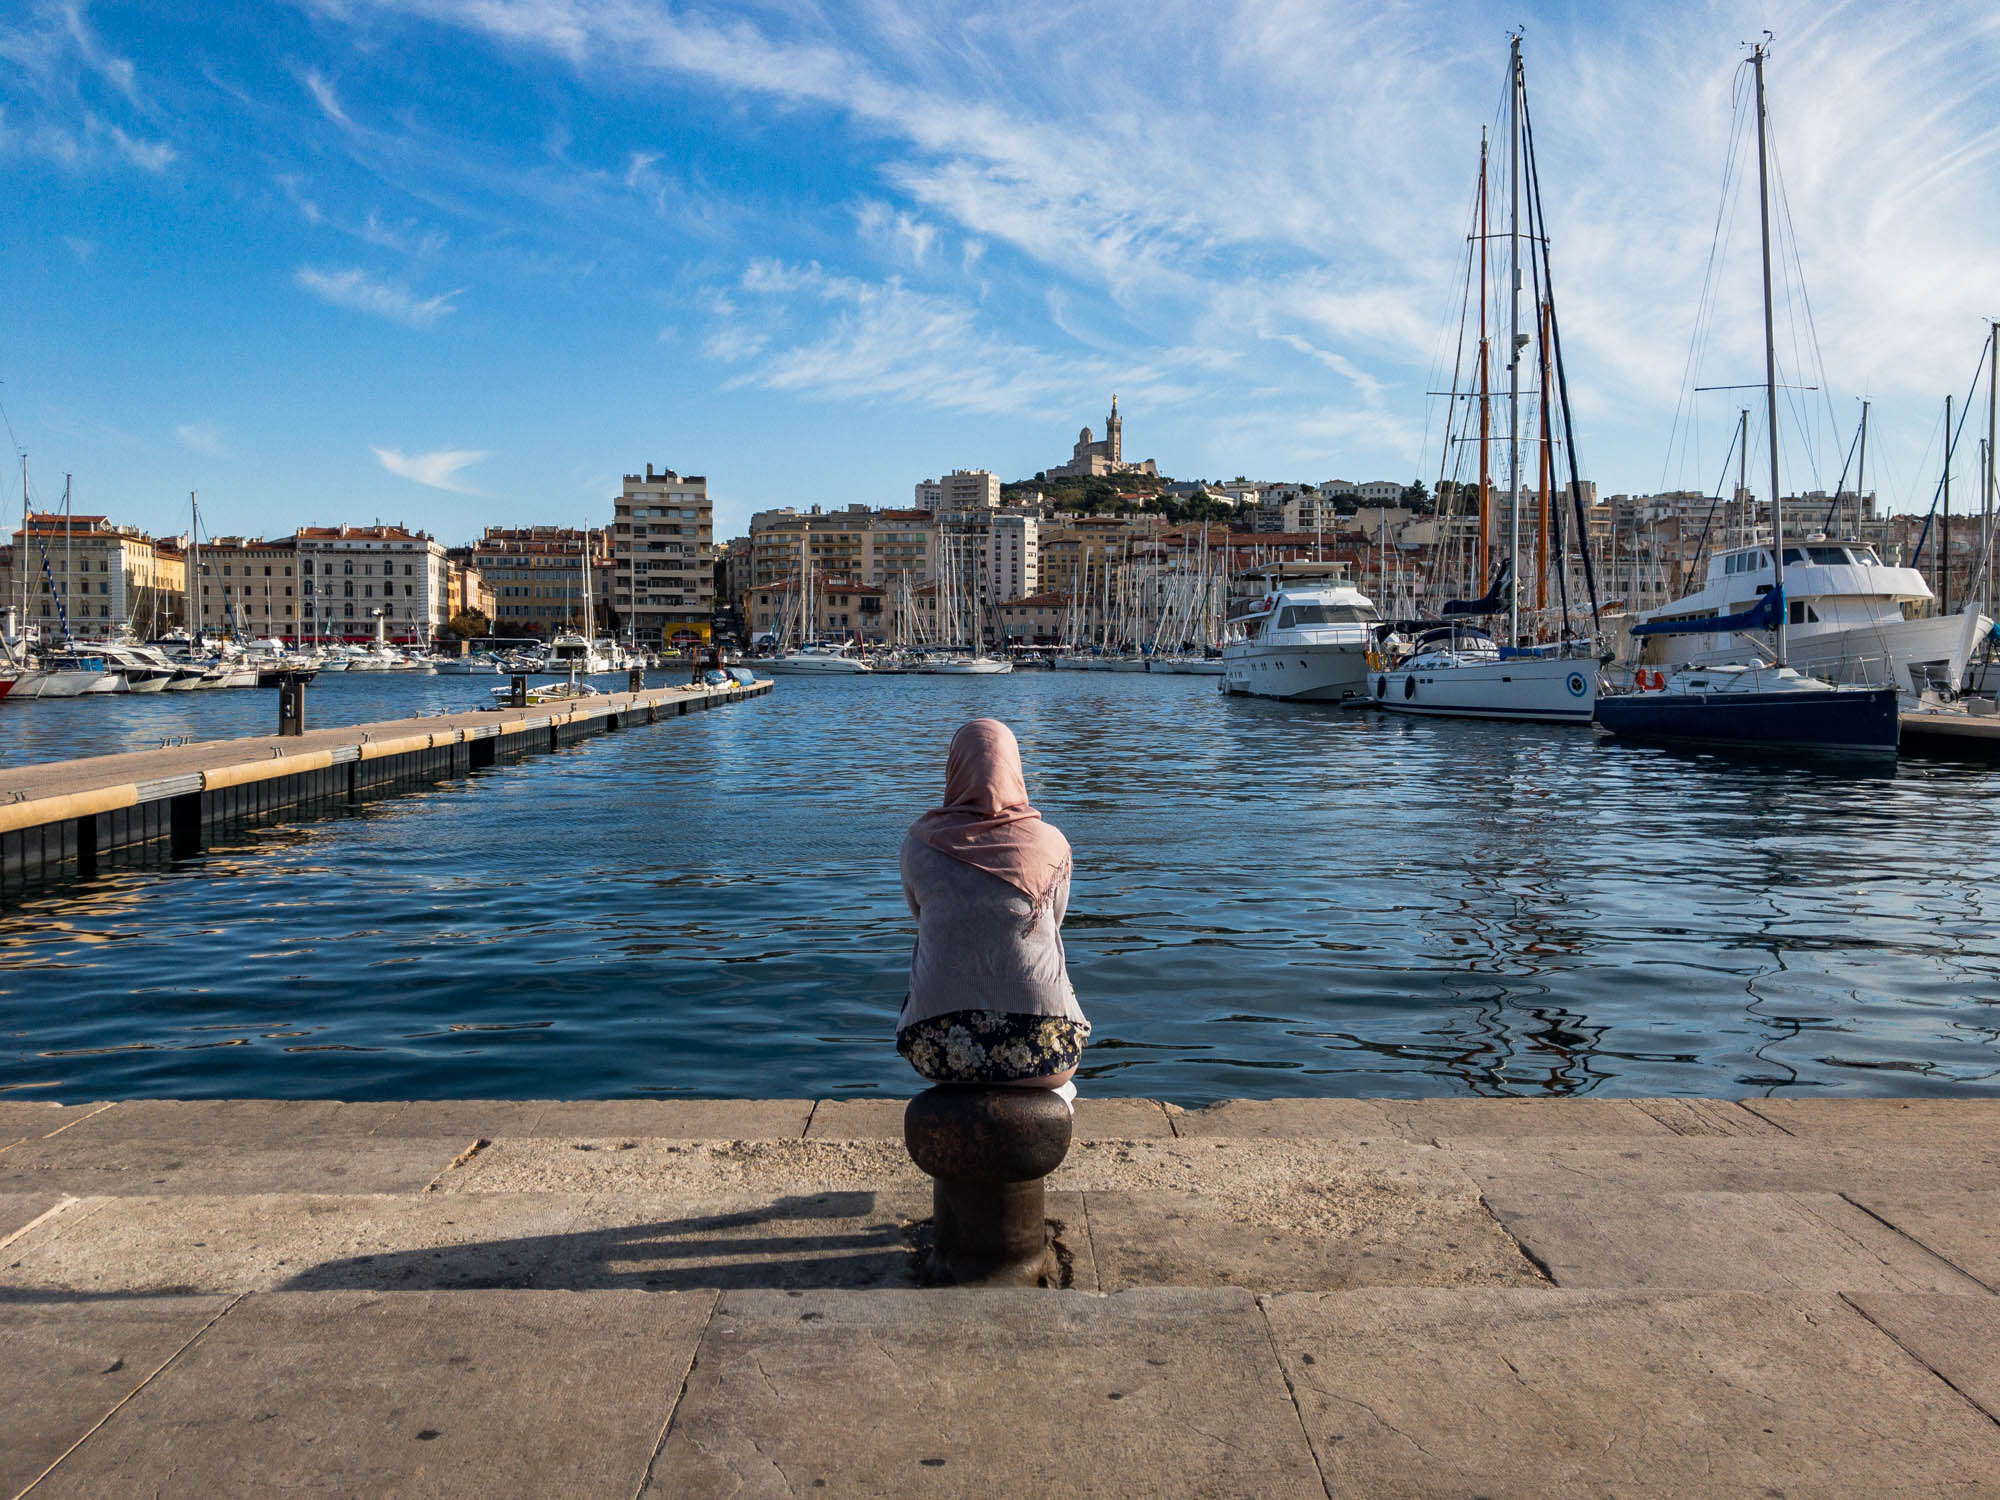 From Marseille to Cassis